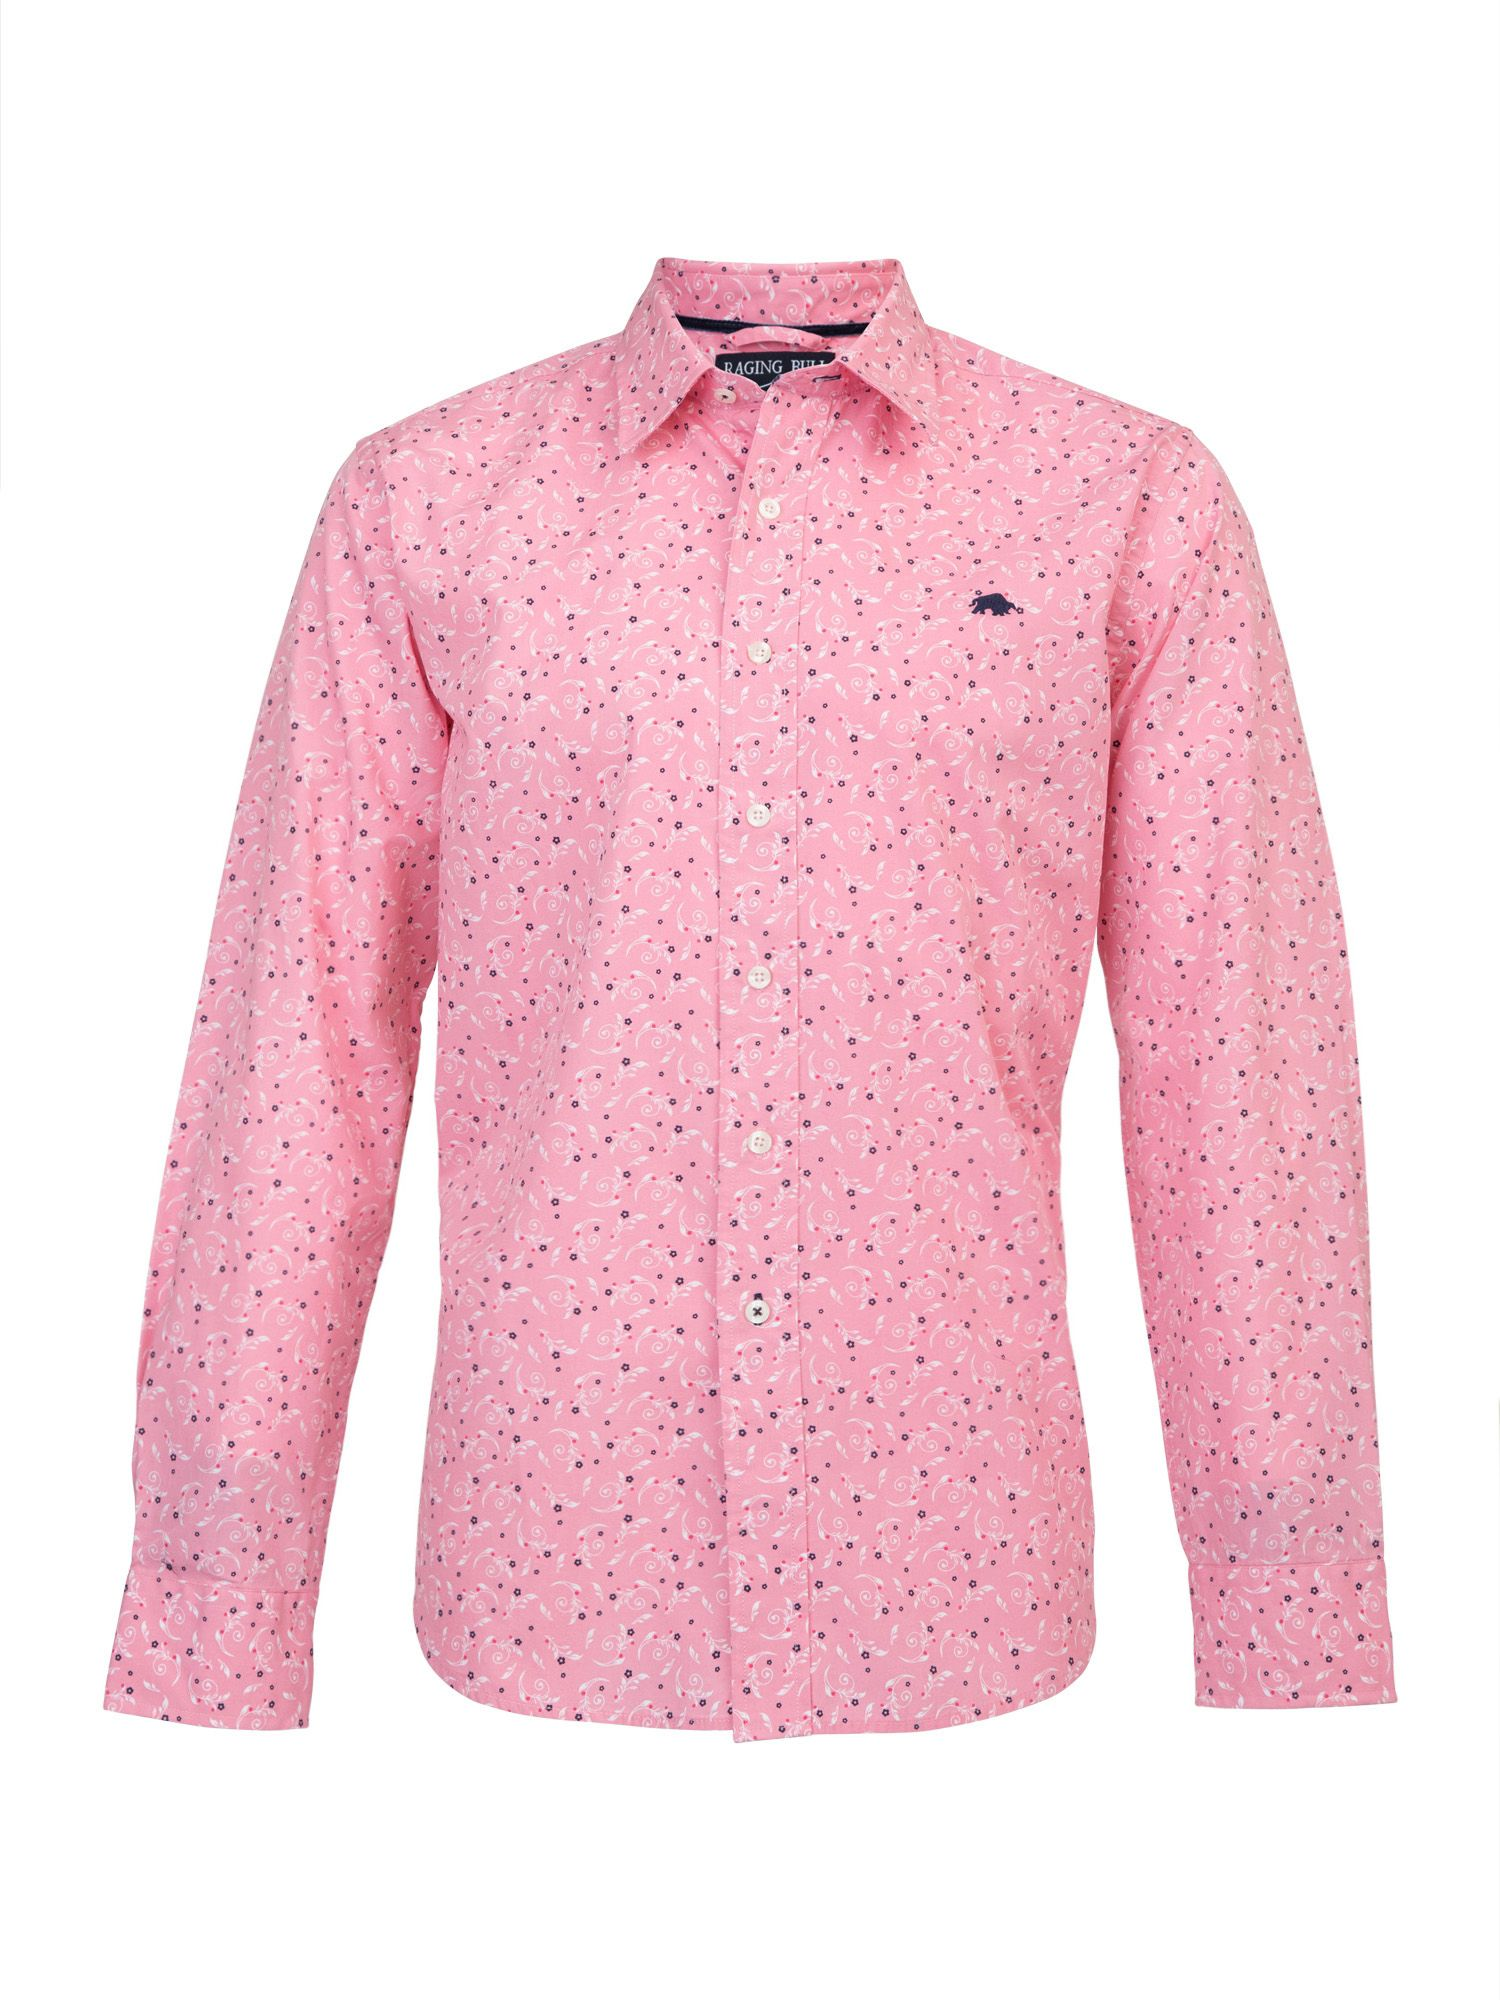 Big and Tall Floral print long sleeve shirt